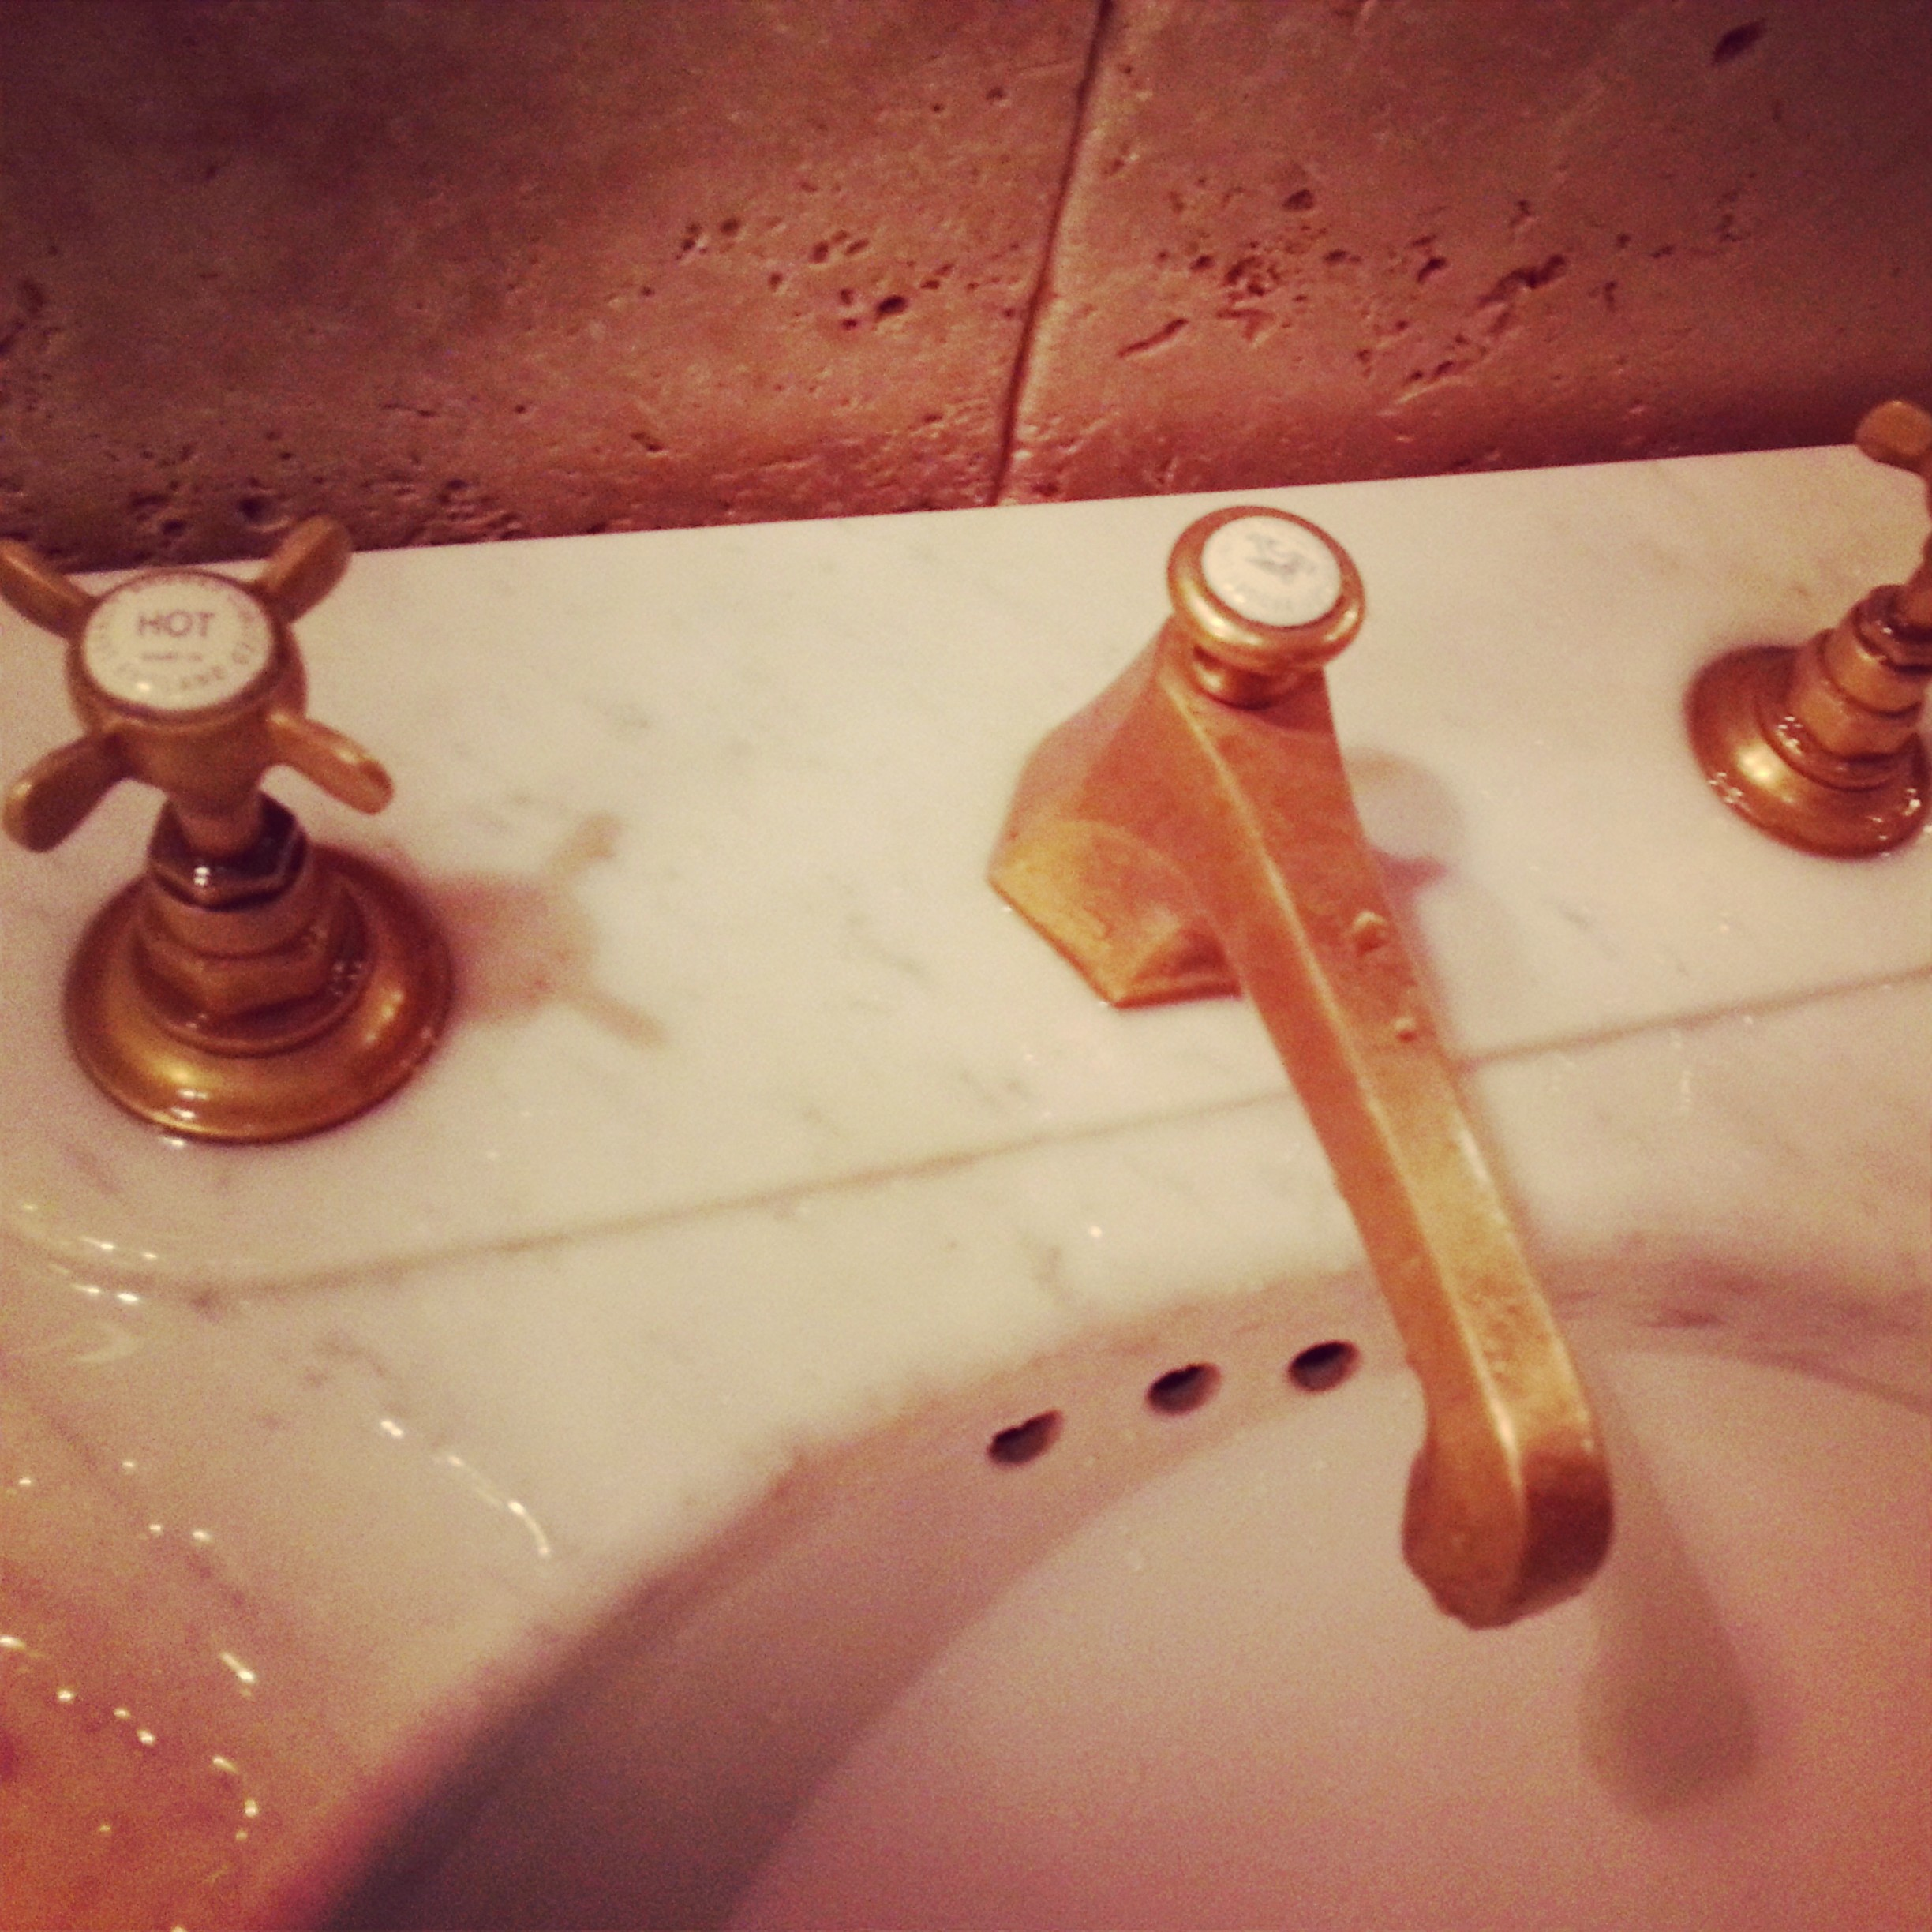 Vintage-inspired faucet at one of the many amazing restaurants we visited - I can't remember which.